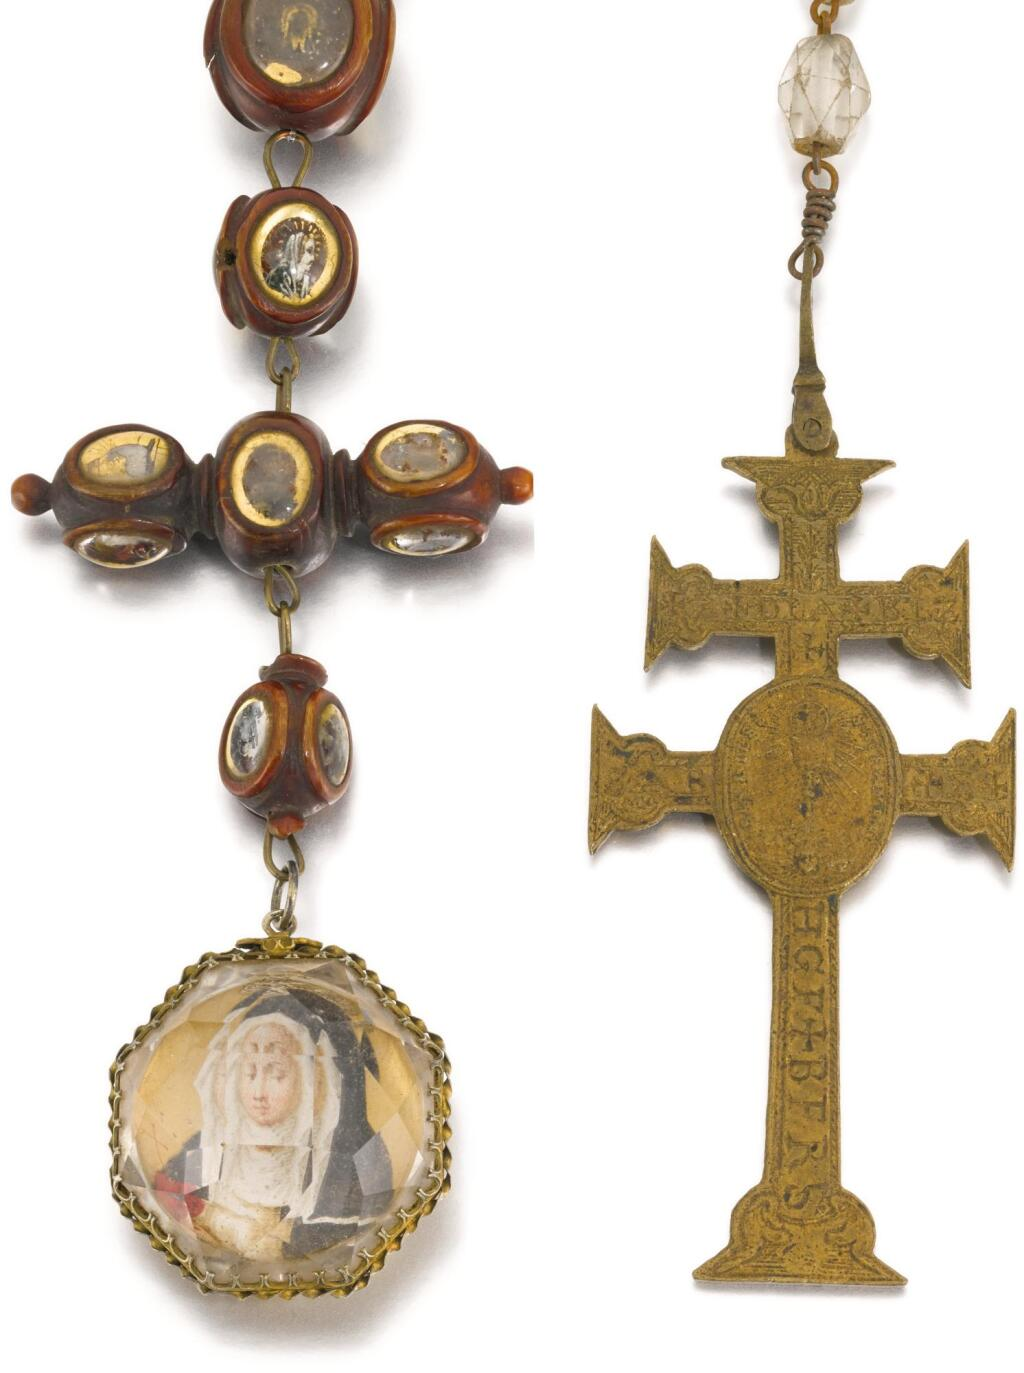 SPANISH, PROBABLY LATE 17TH CENTURY | Patriarchal Cross